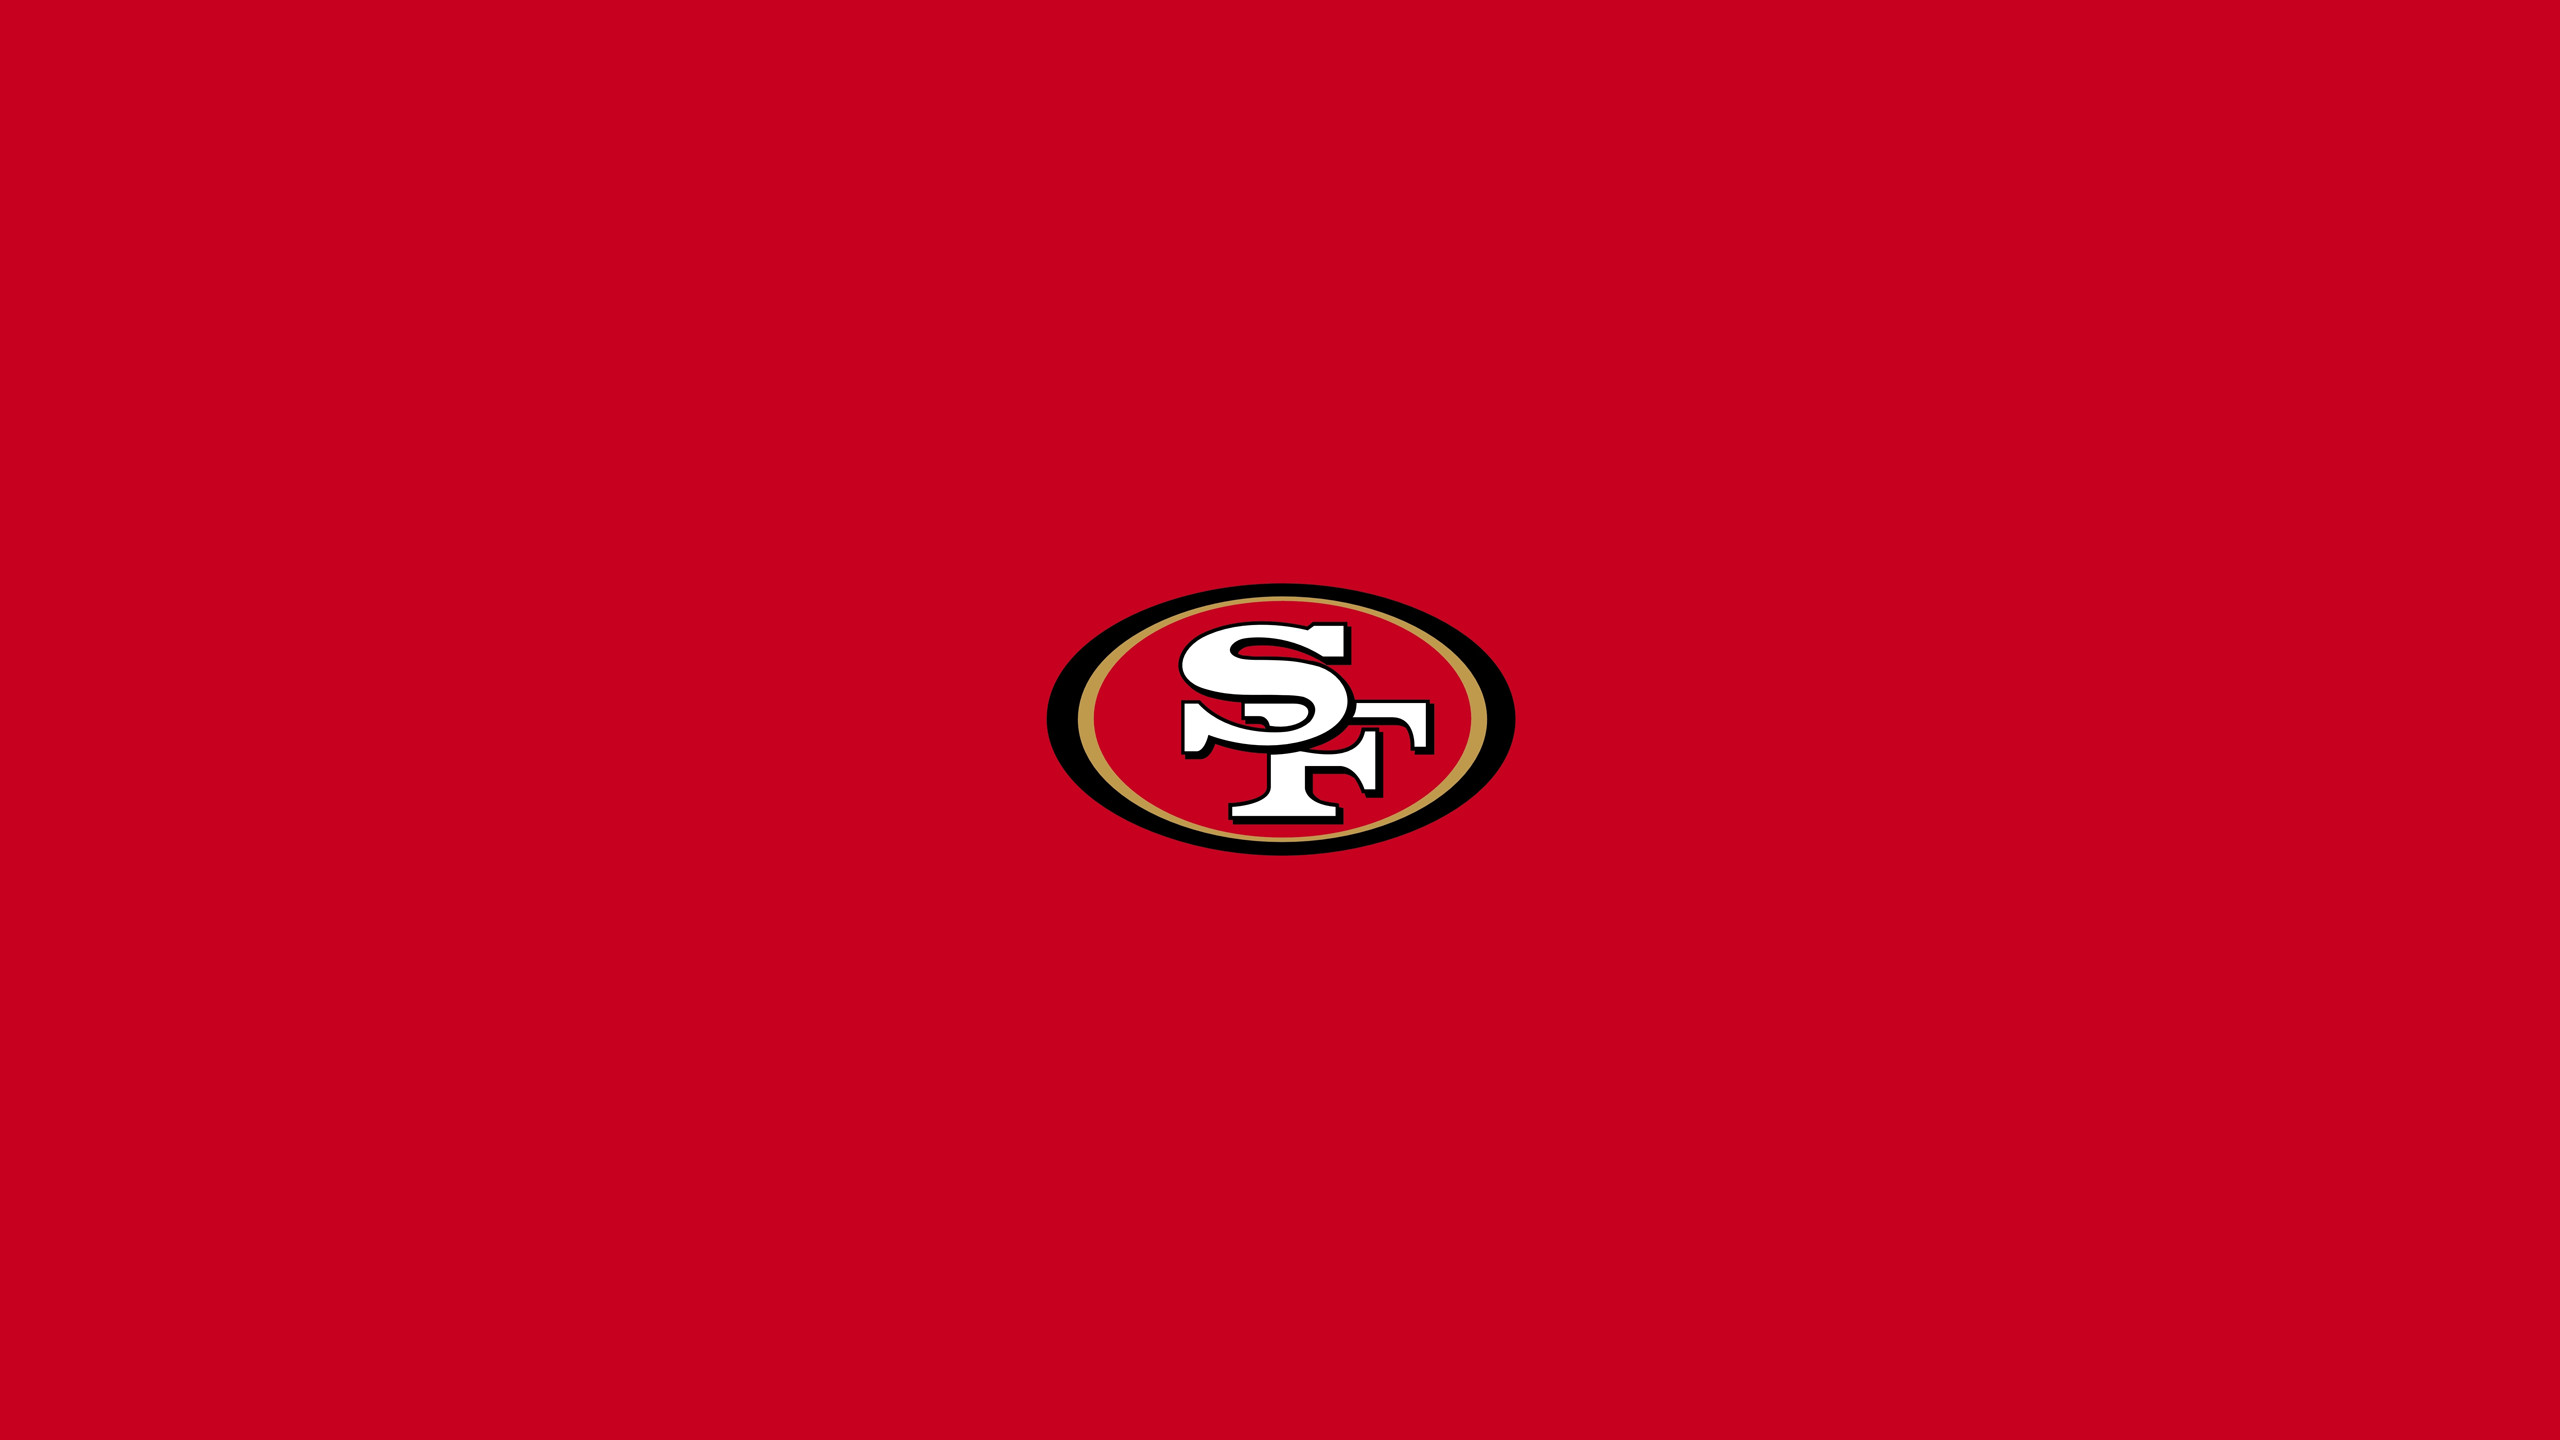 2560x1440 Photos Of Hd San Francisco Ers 49ers Wallpaper Images Computer